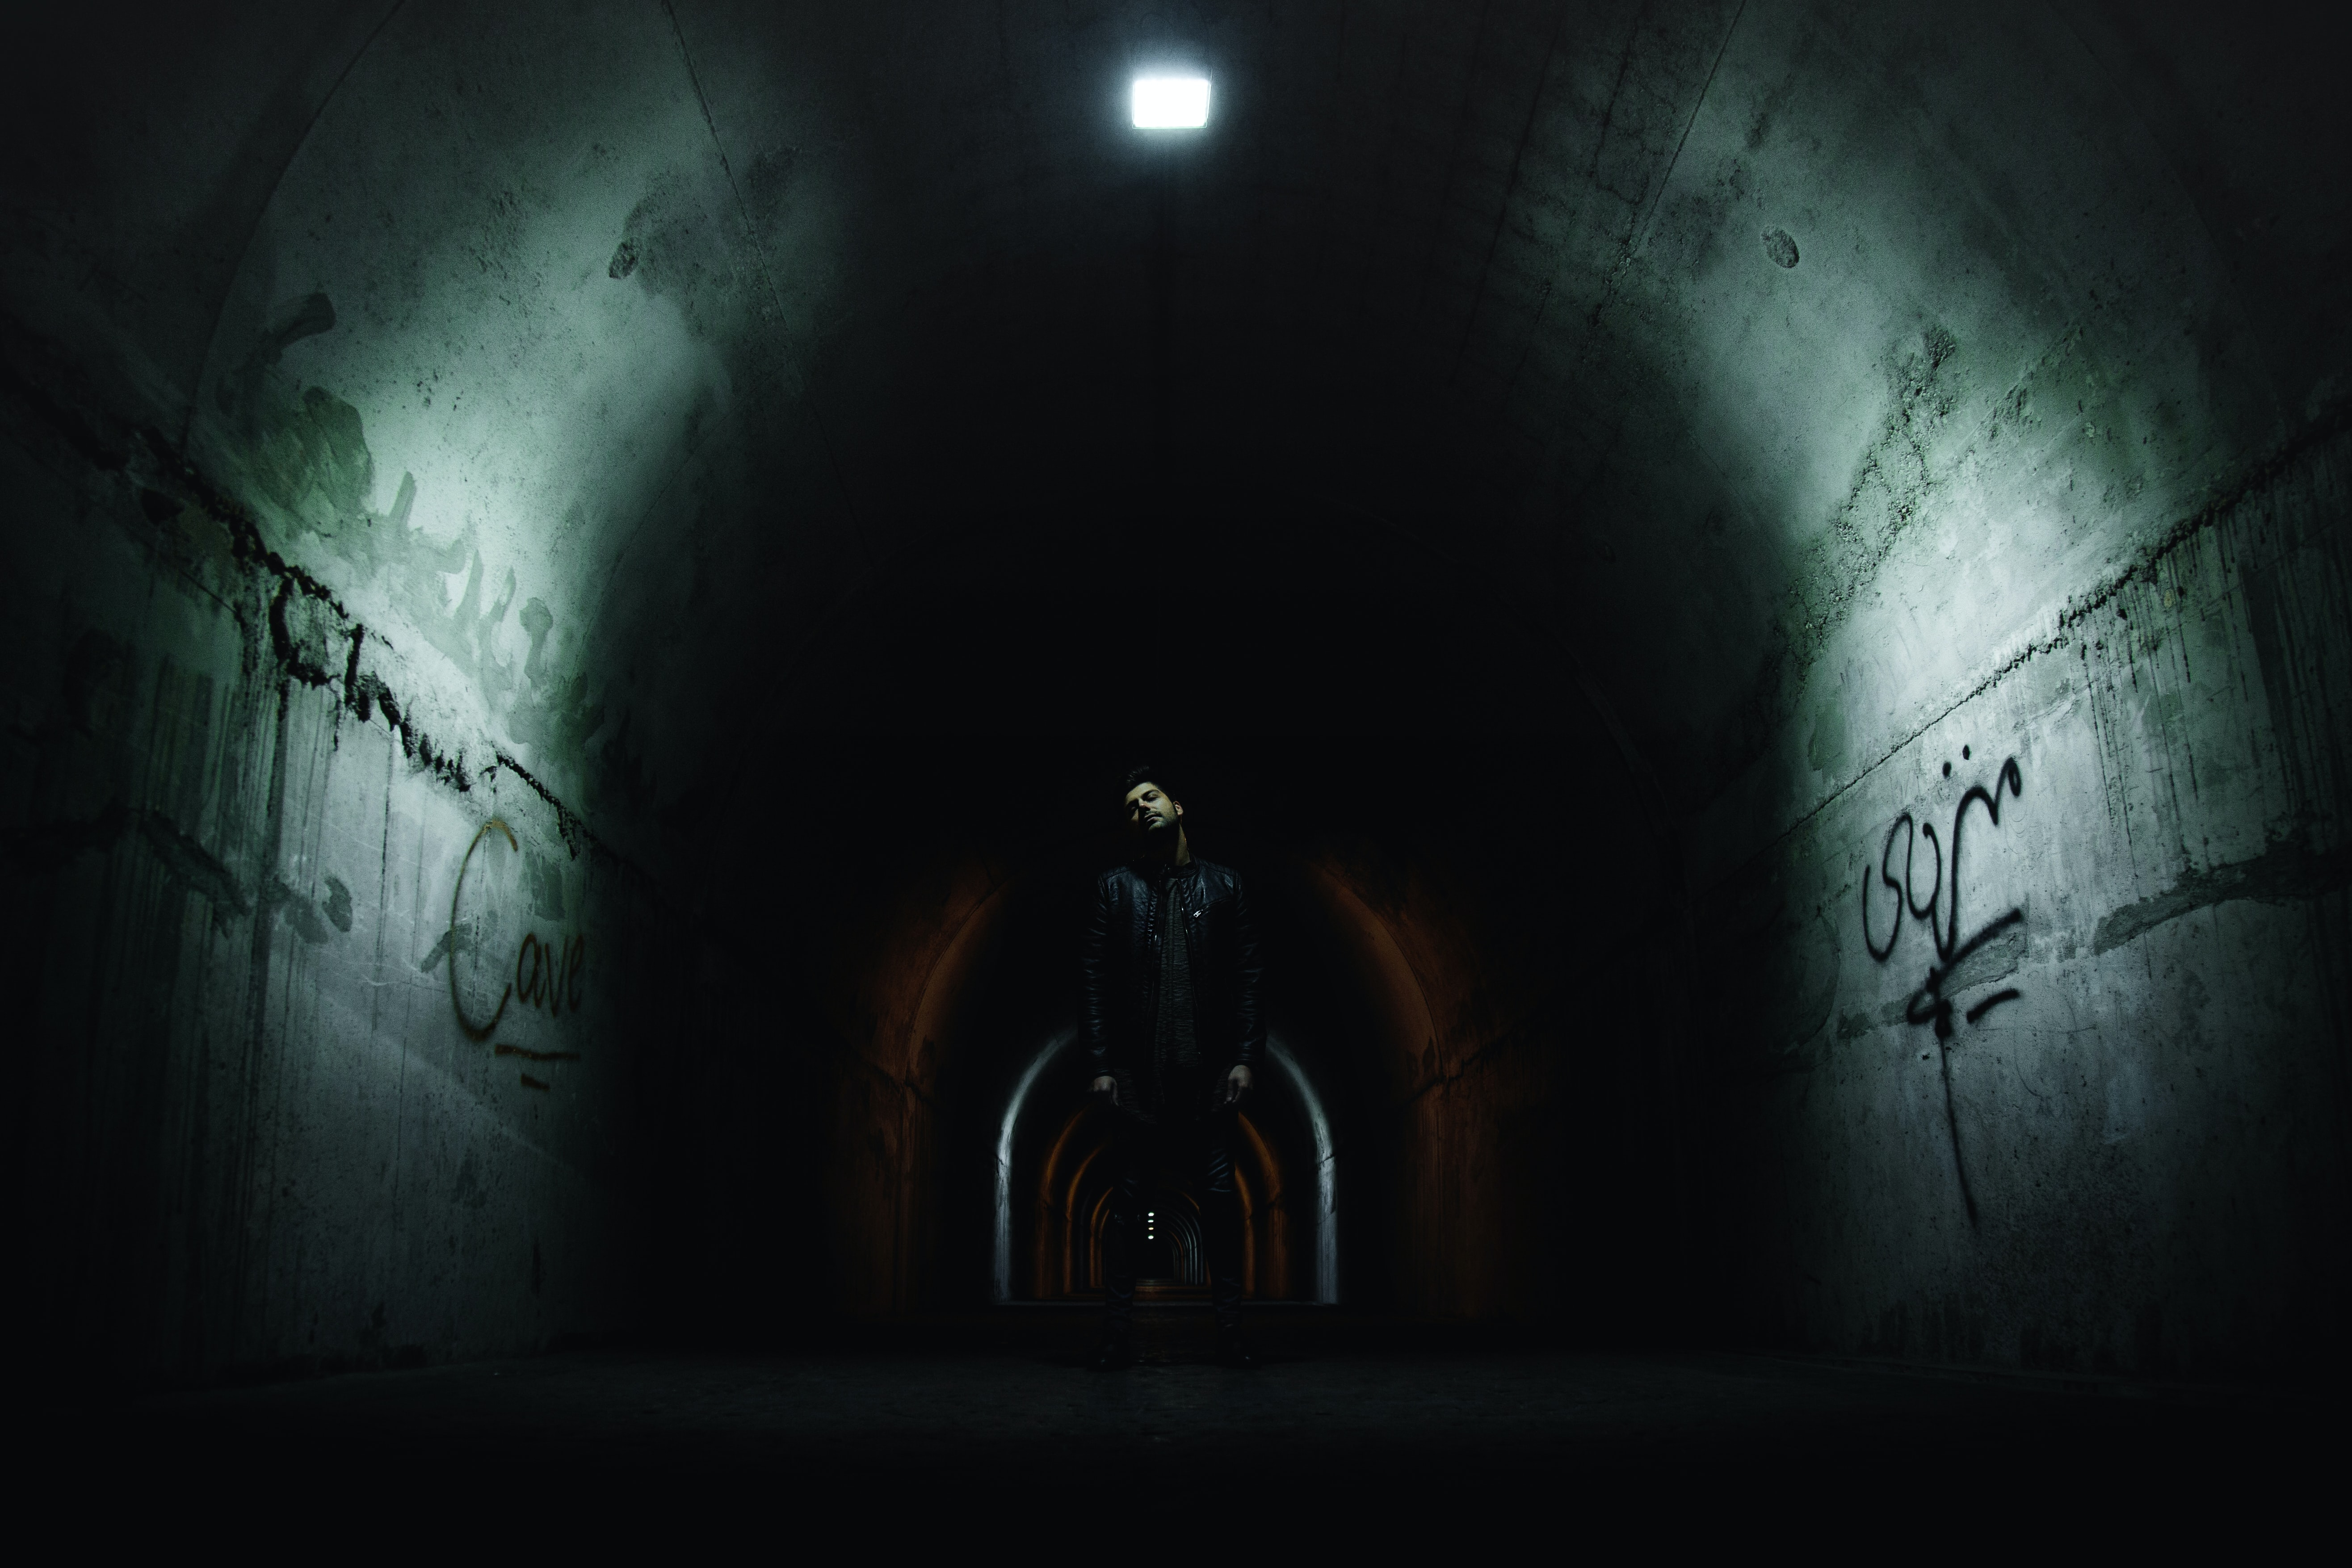 man standing in the middle of the tunnel under the light